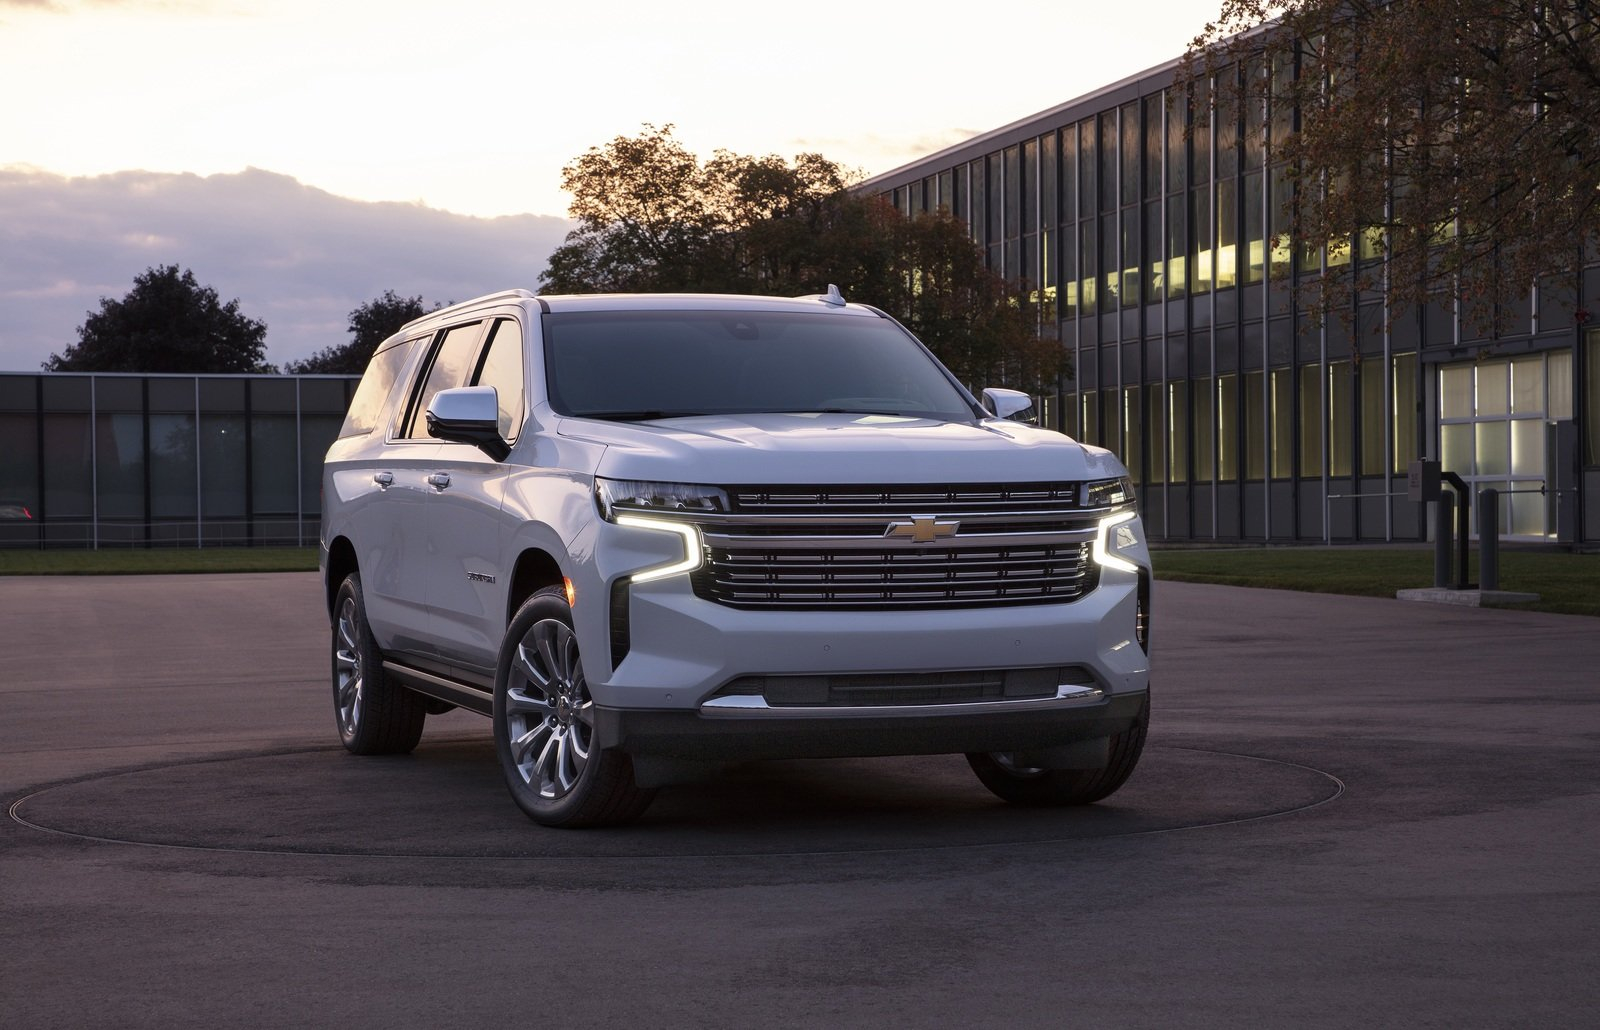 2021 Chevy Suburban 2021 Chevy Traverse High Country Specs, Features, Near Me